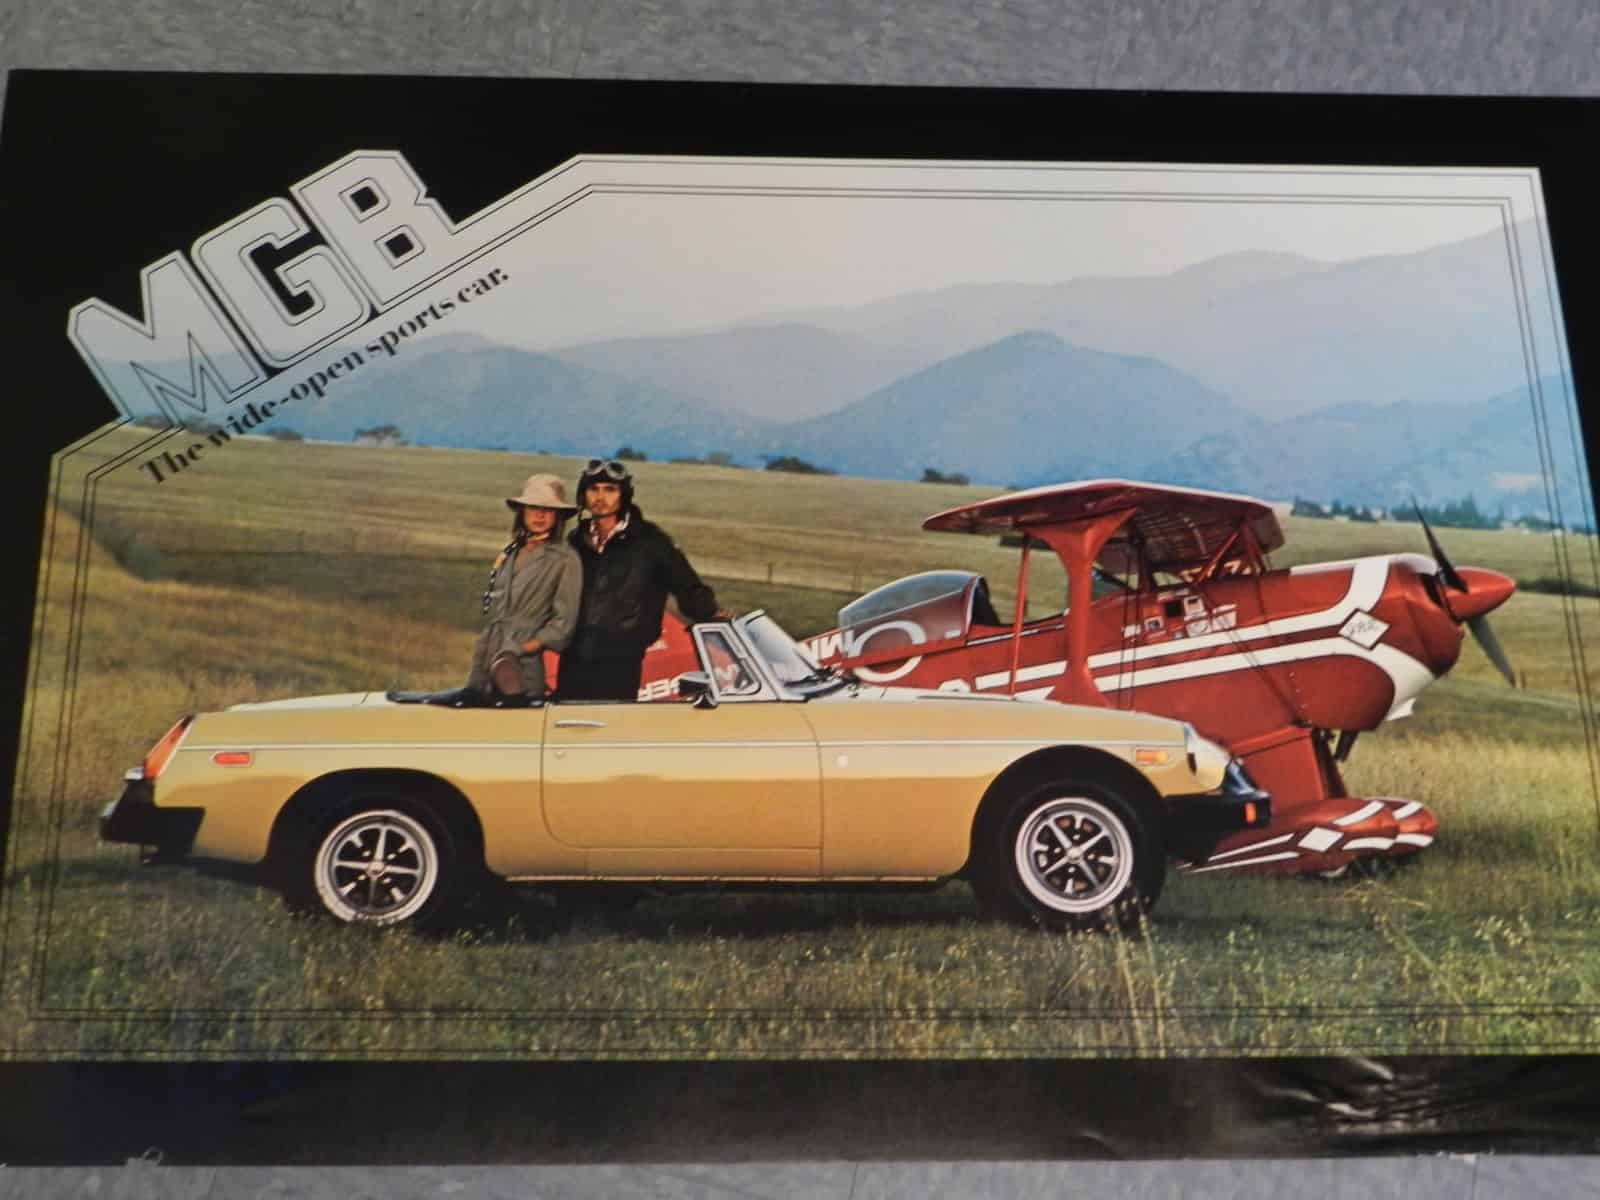 Harveyleichti Bh besides C A   Crop Xw Xh together with Mgb Wide Open Sports Car Dealer Poster Large British Leyland likewise Bryanheidtman C also Mg Mgb Roadster Interior. on mg mgb sports cars